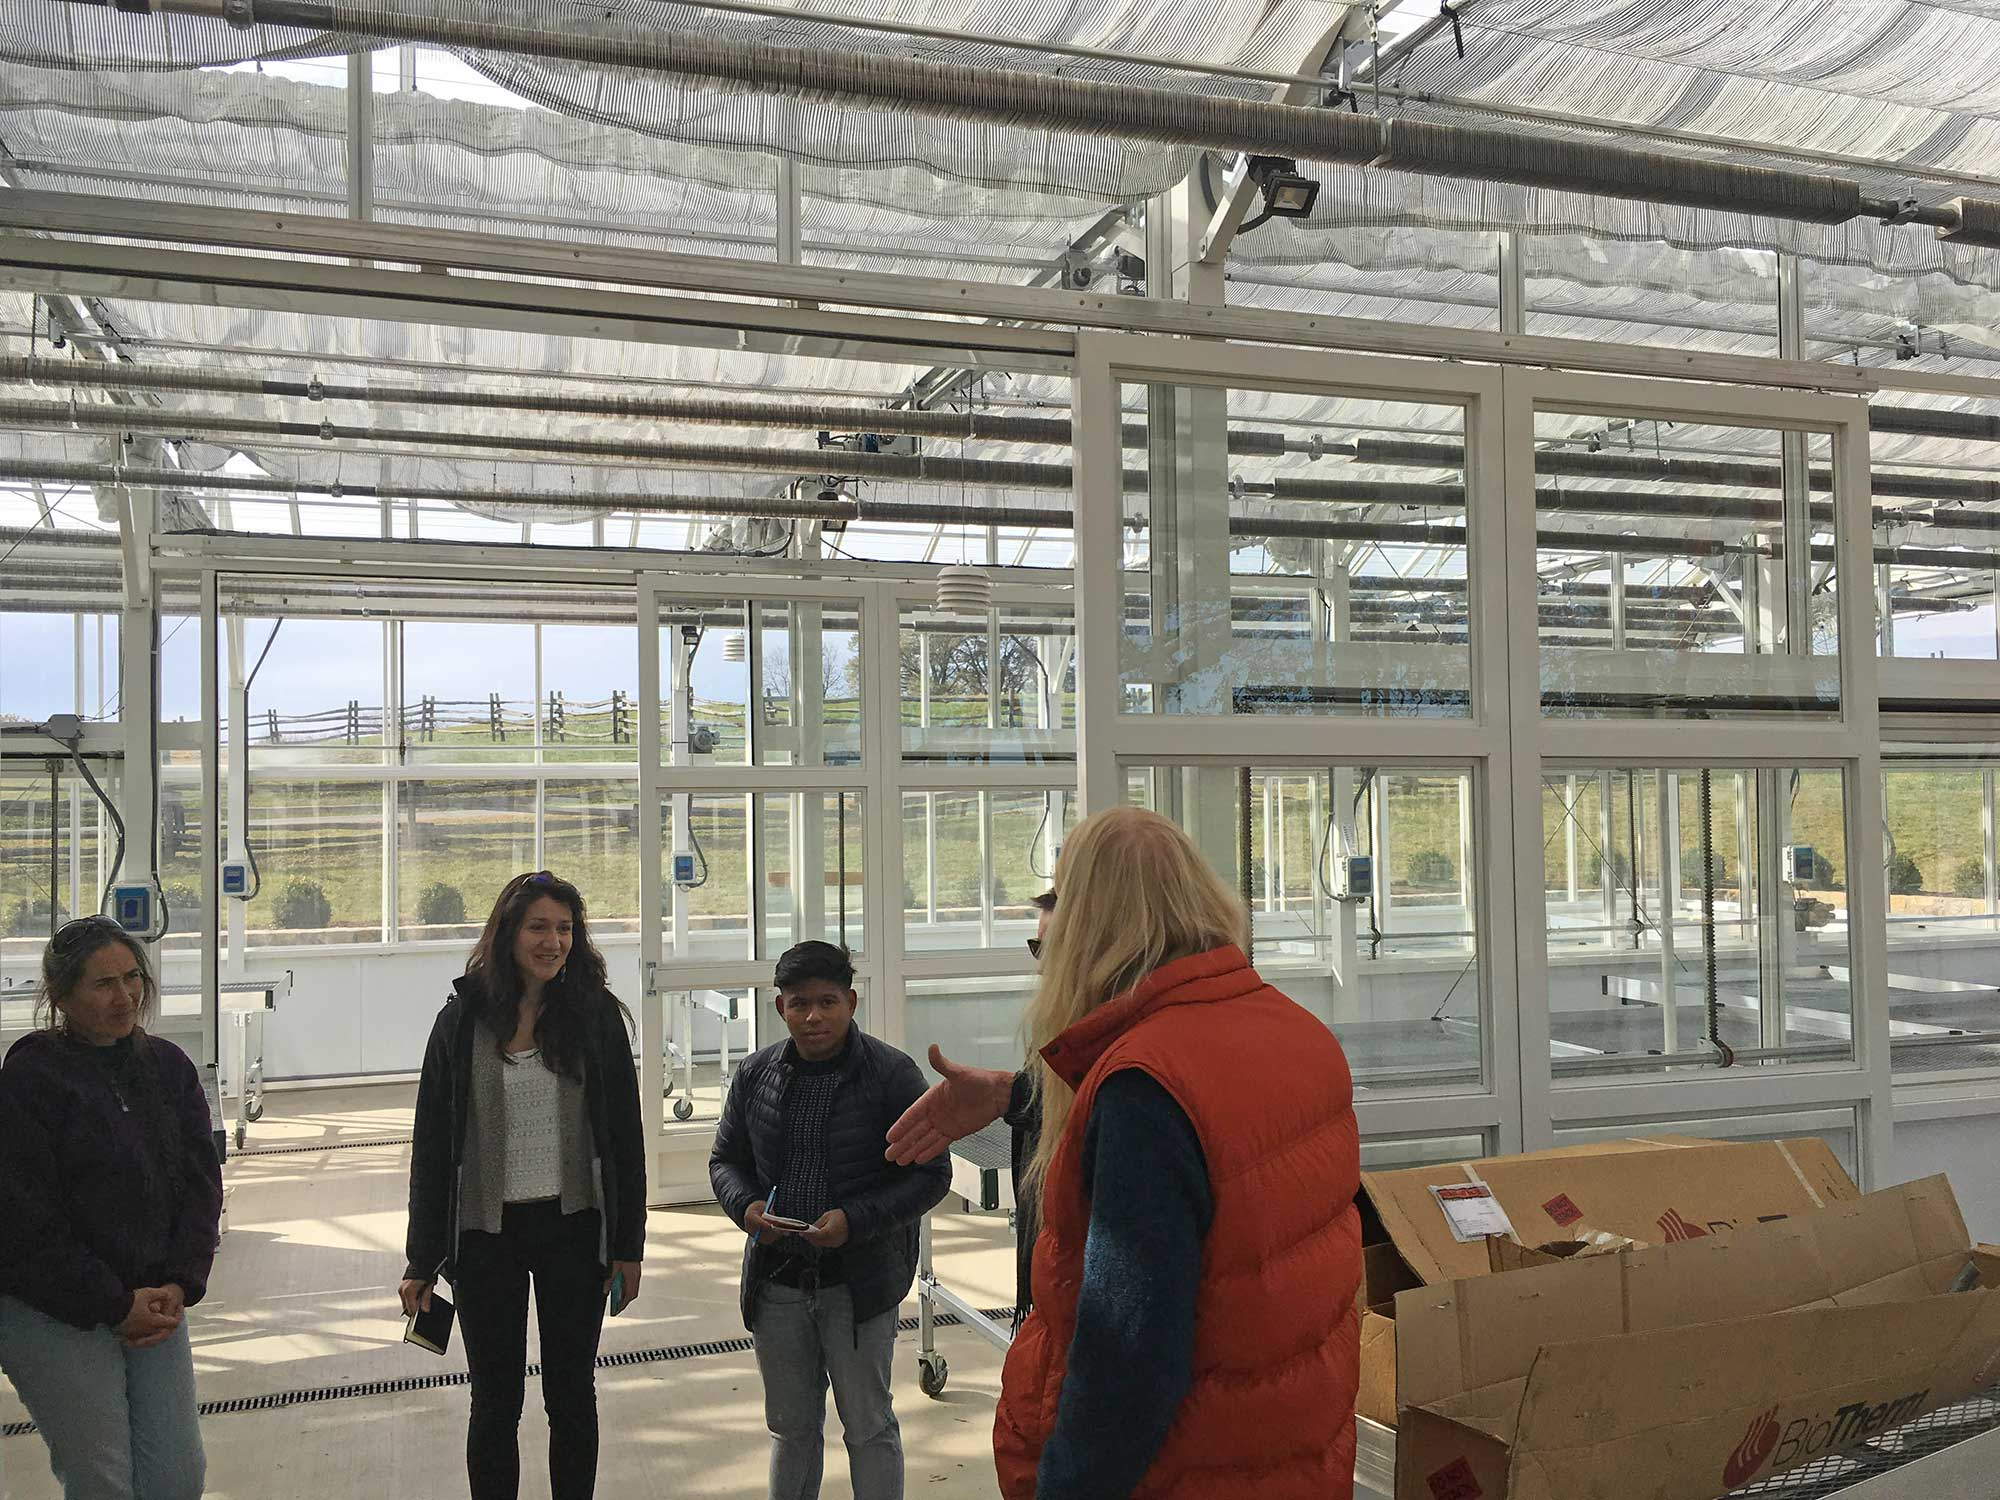 OSGF's first horticultural interns get a taste of our new greenhouses.In April 2017, the interns will begin a 6-month-long program during which they will put their studies to practice using our grounds and facilities.